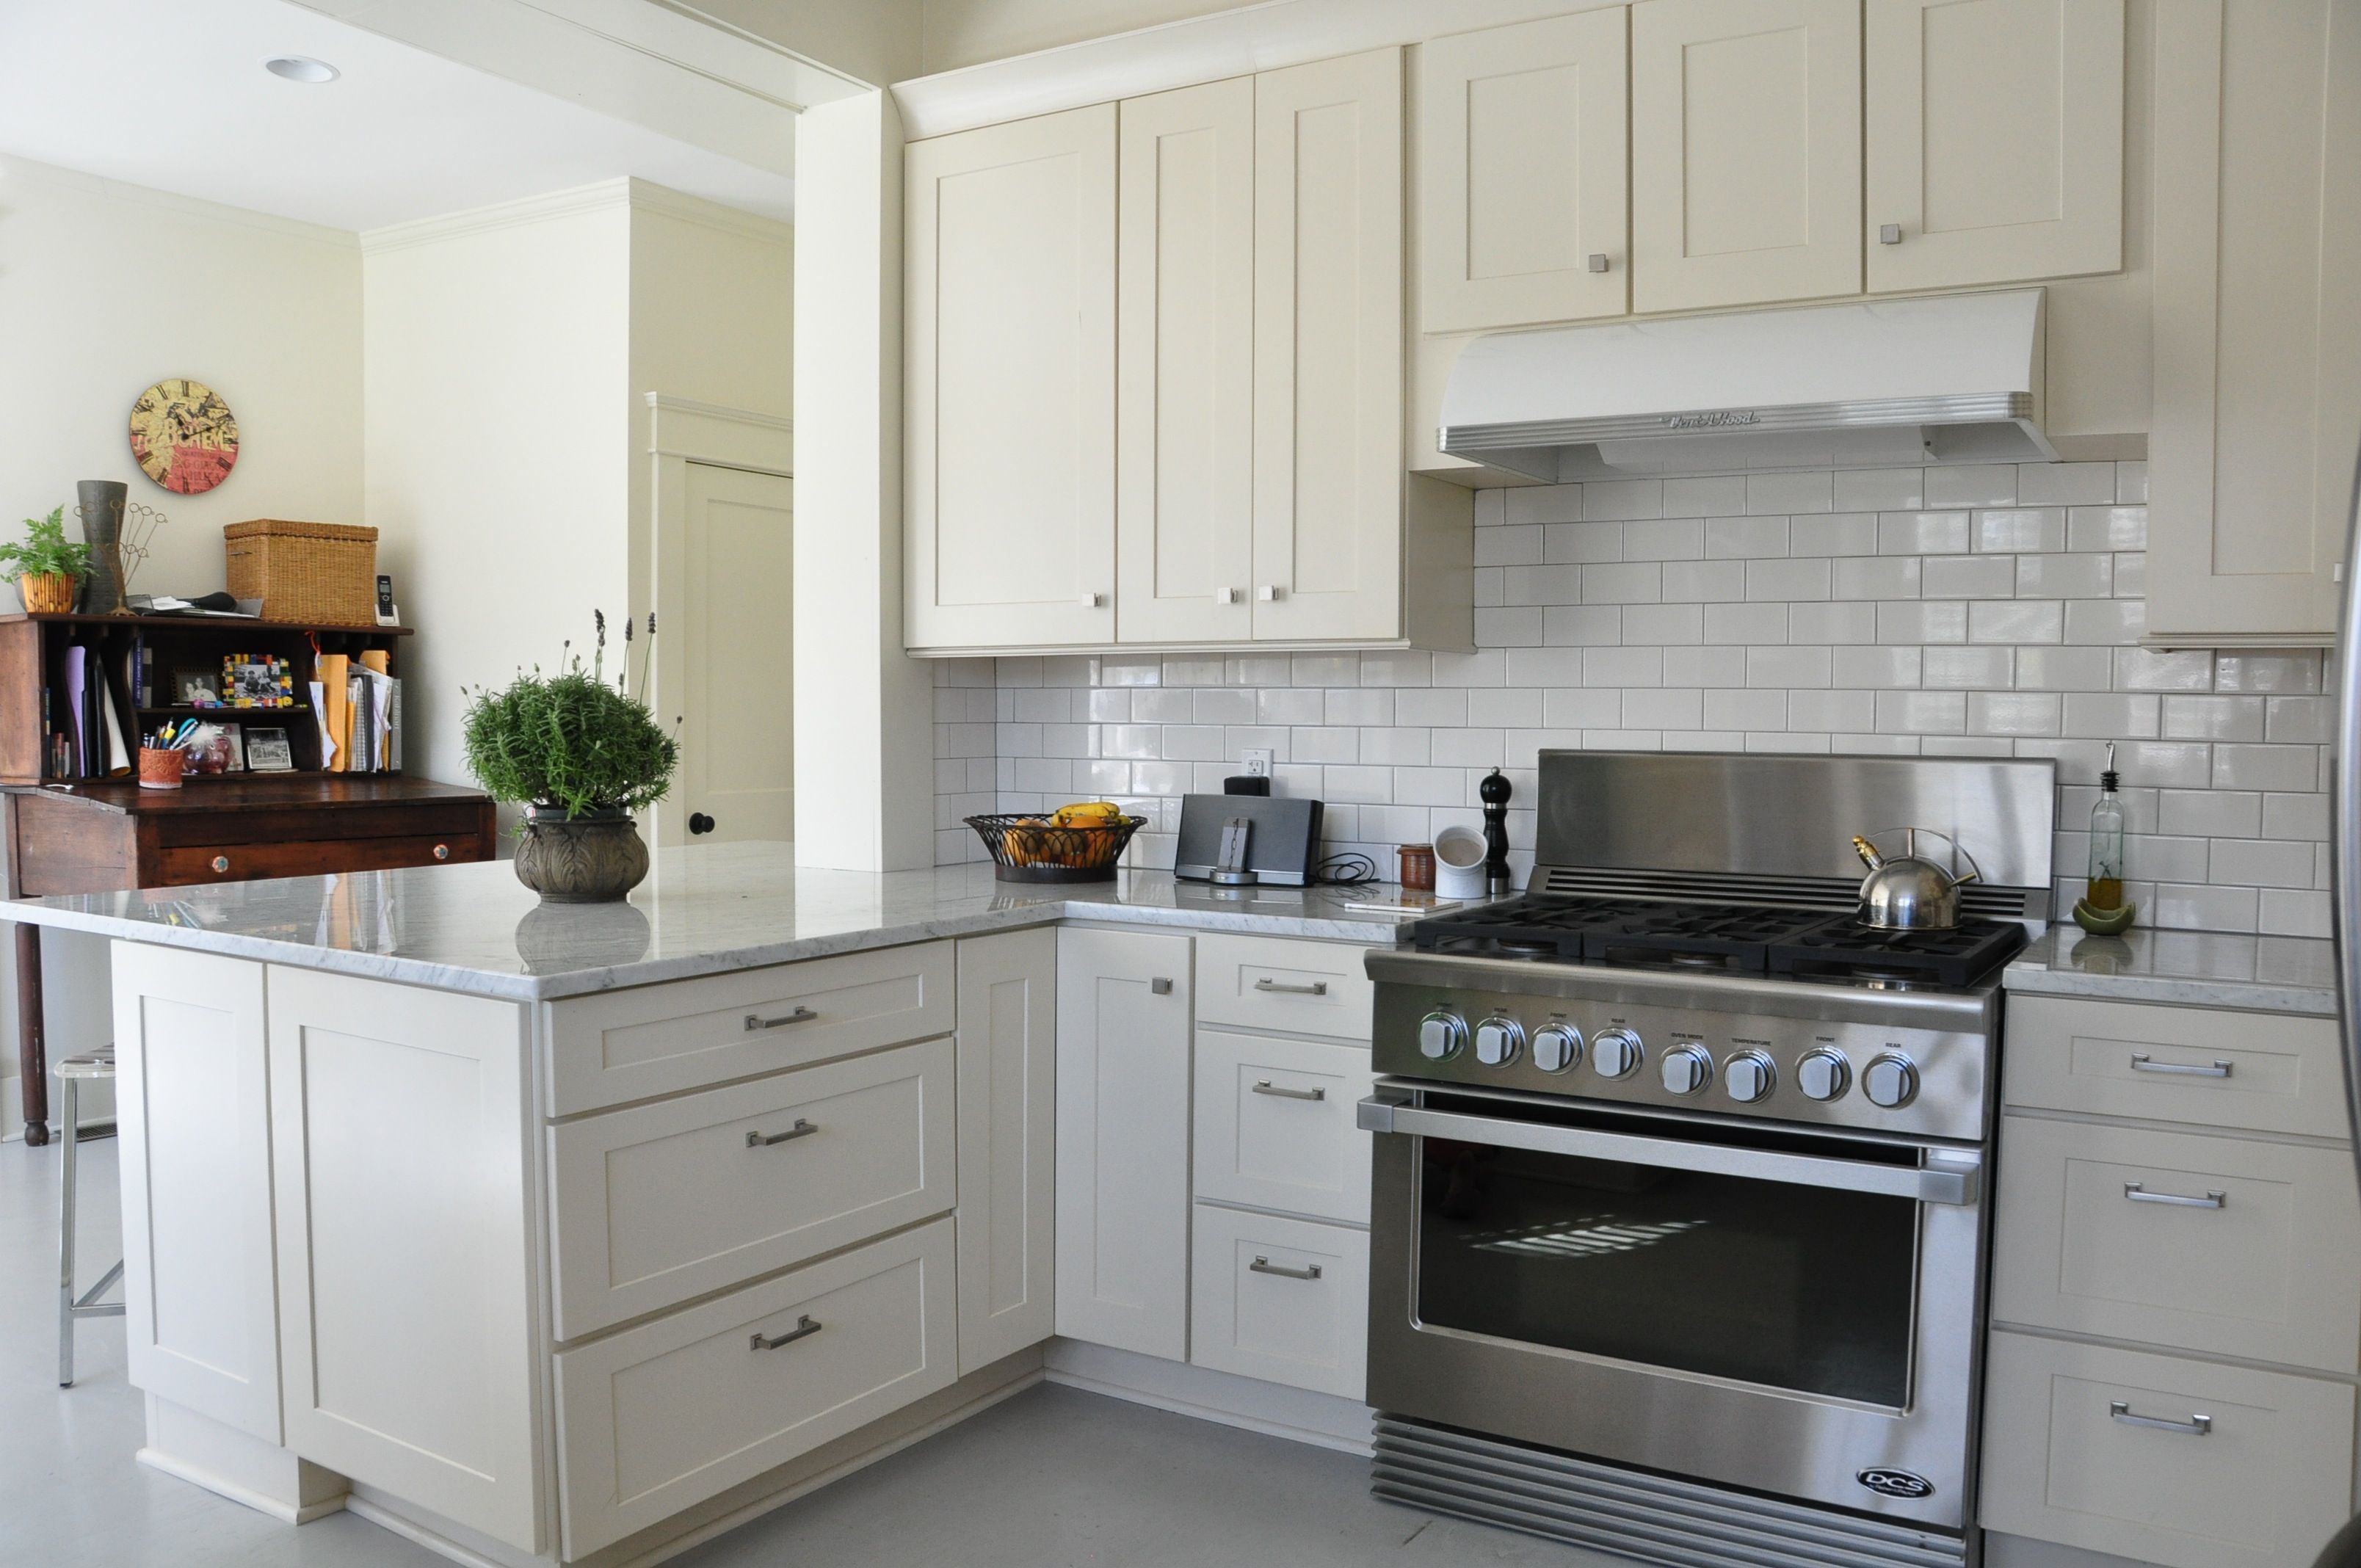 Classic Kitchen With Subway Tile Kabinart Cabinetry Is Mission Maple Starlite W 5 Pc Drawer Fr Kitchen Inspirations Classic Kitchens White Kitchen Inspiration